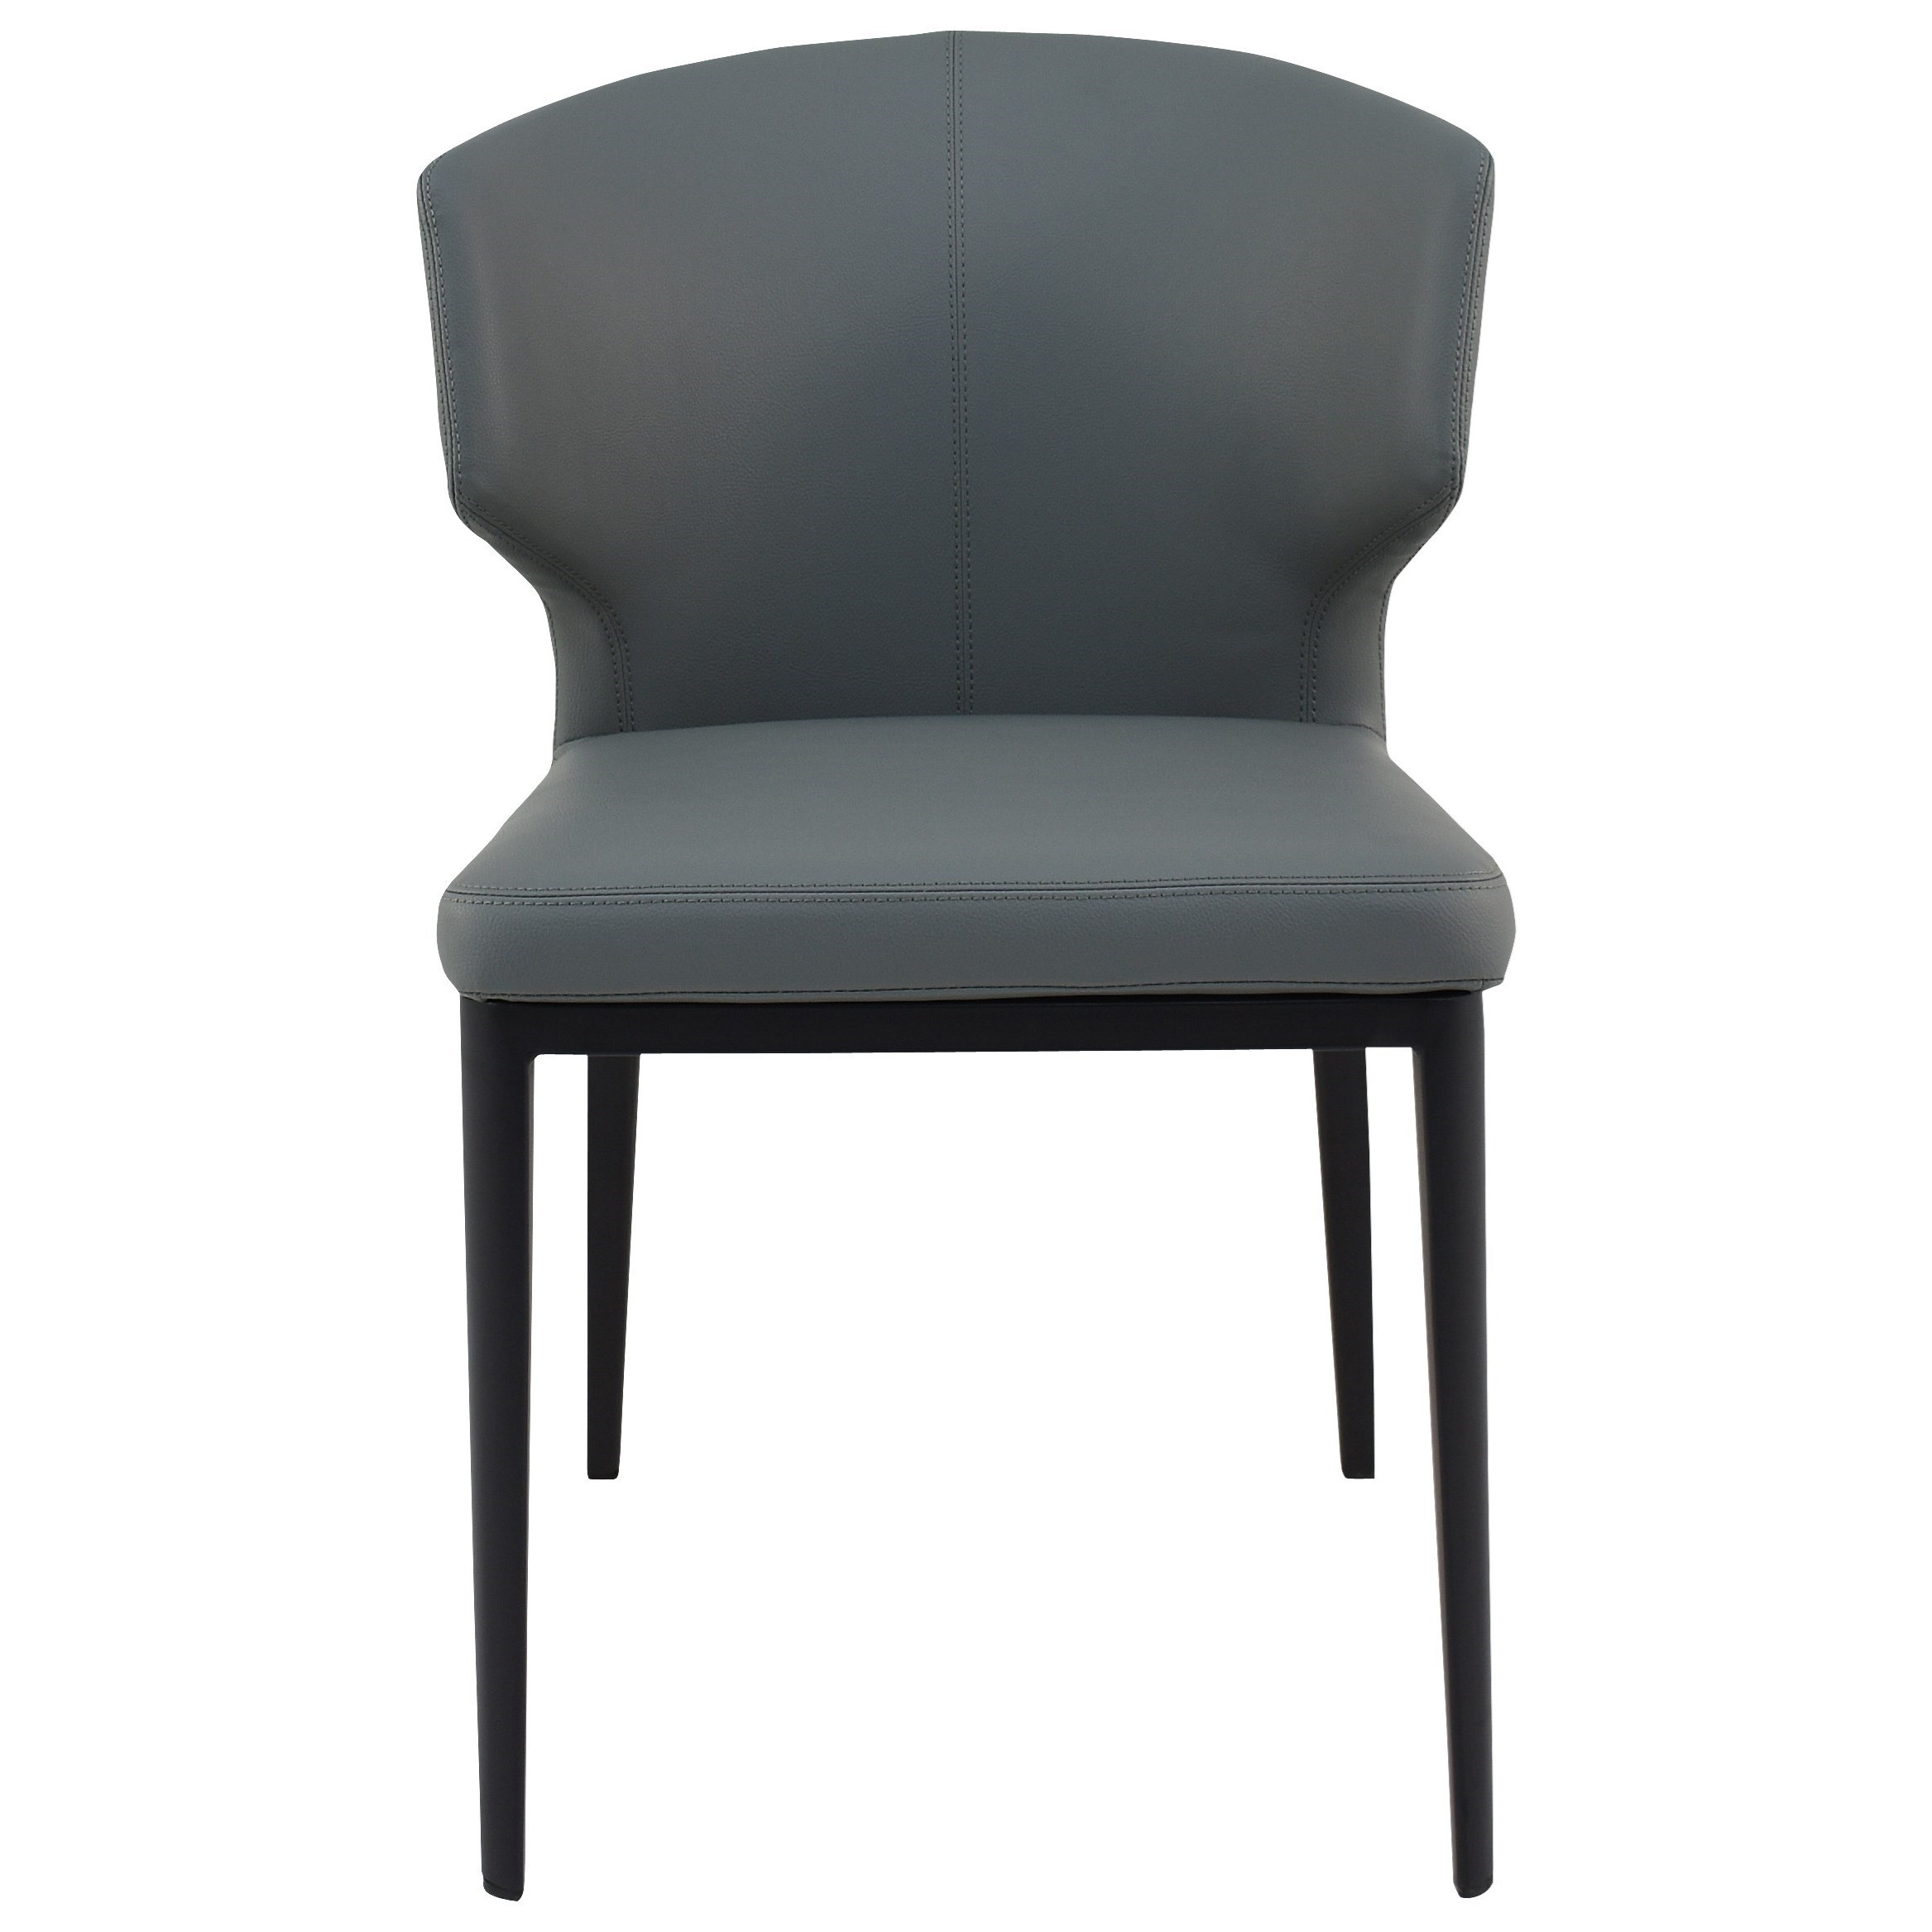 Delaney Contemporary Side Chair by Moe's Home Collection at Stoney Creek Furniture